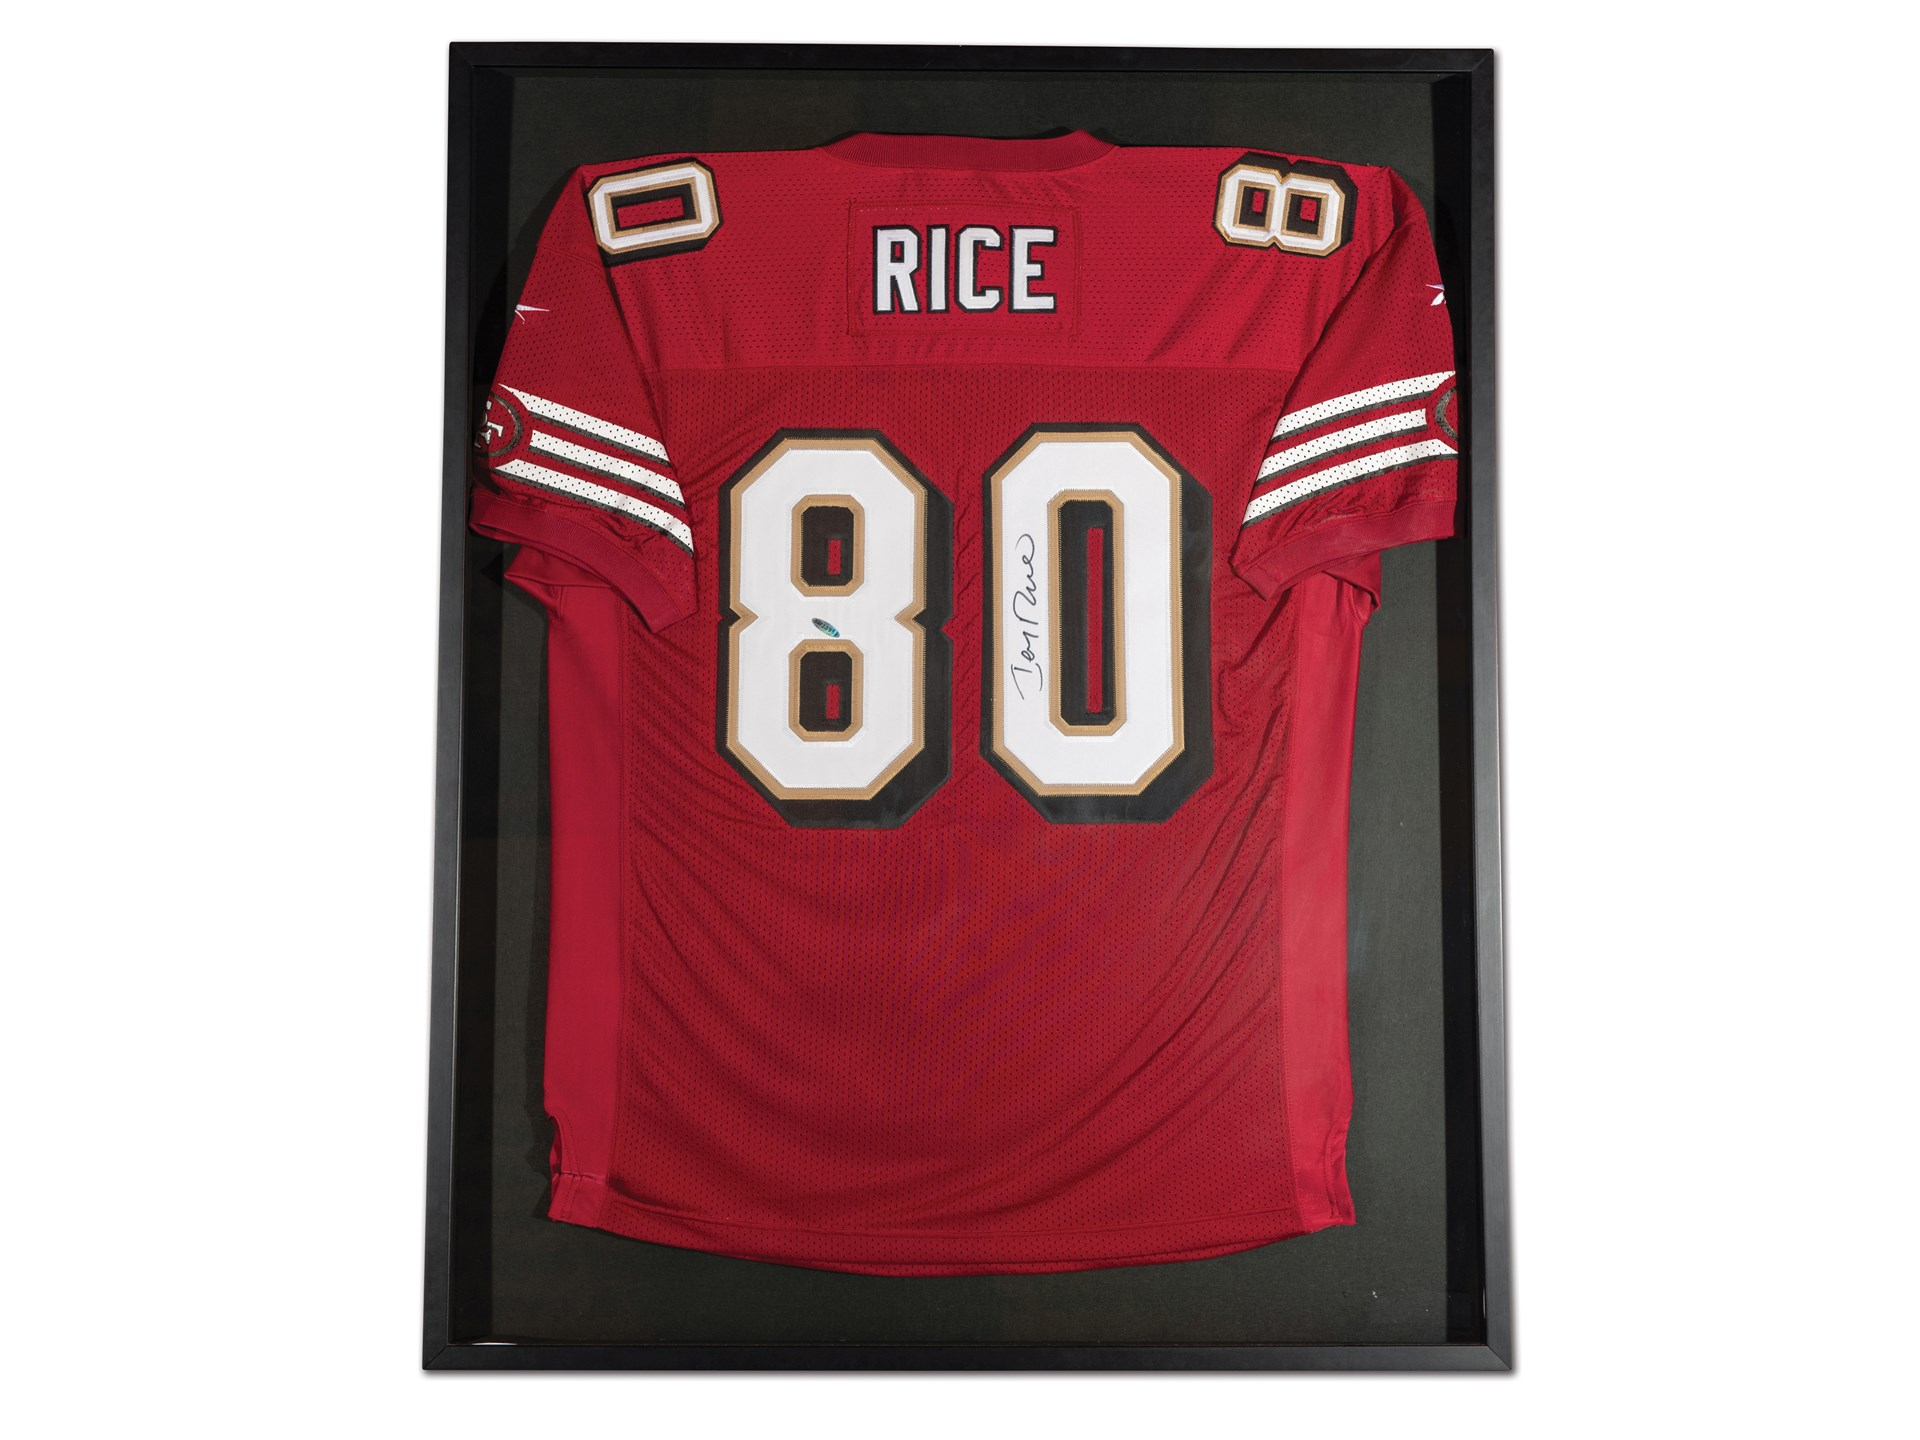 wholesale dealer 6d2bf ed2f4 RM Sotheby's - Jerry Rice San Francisco 49ers Autographed ...